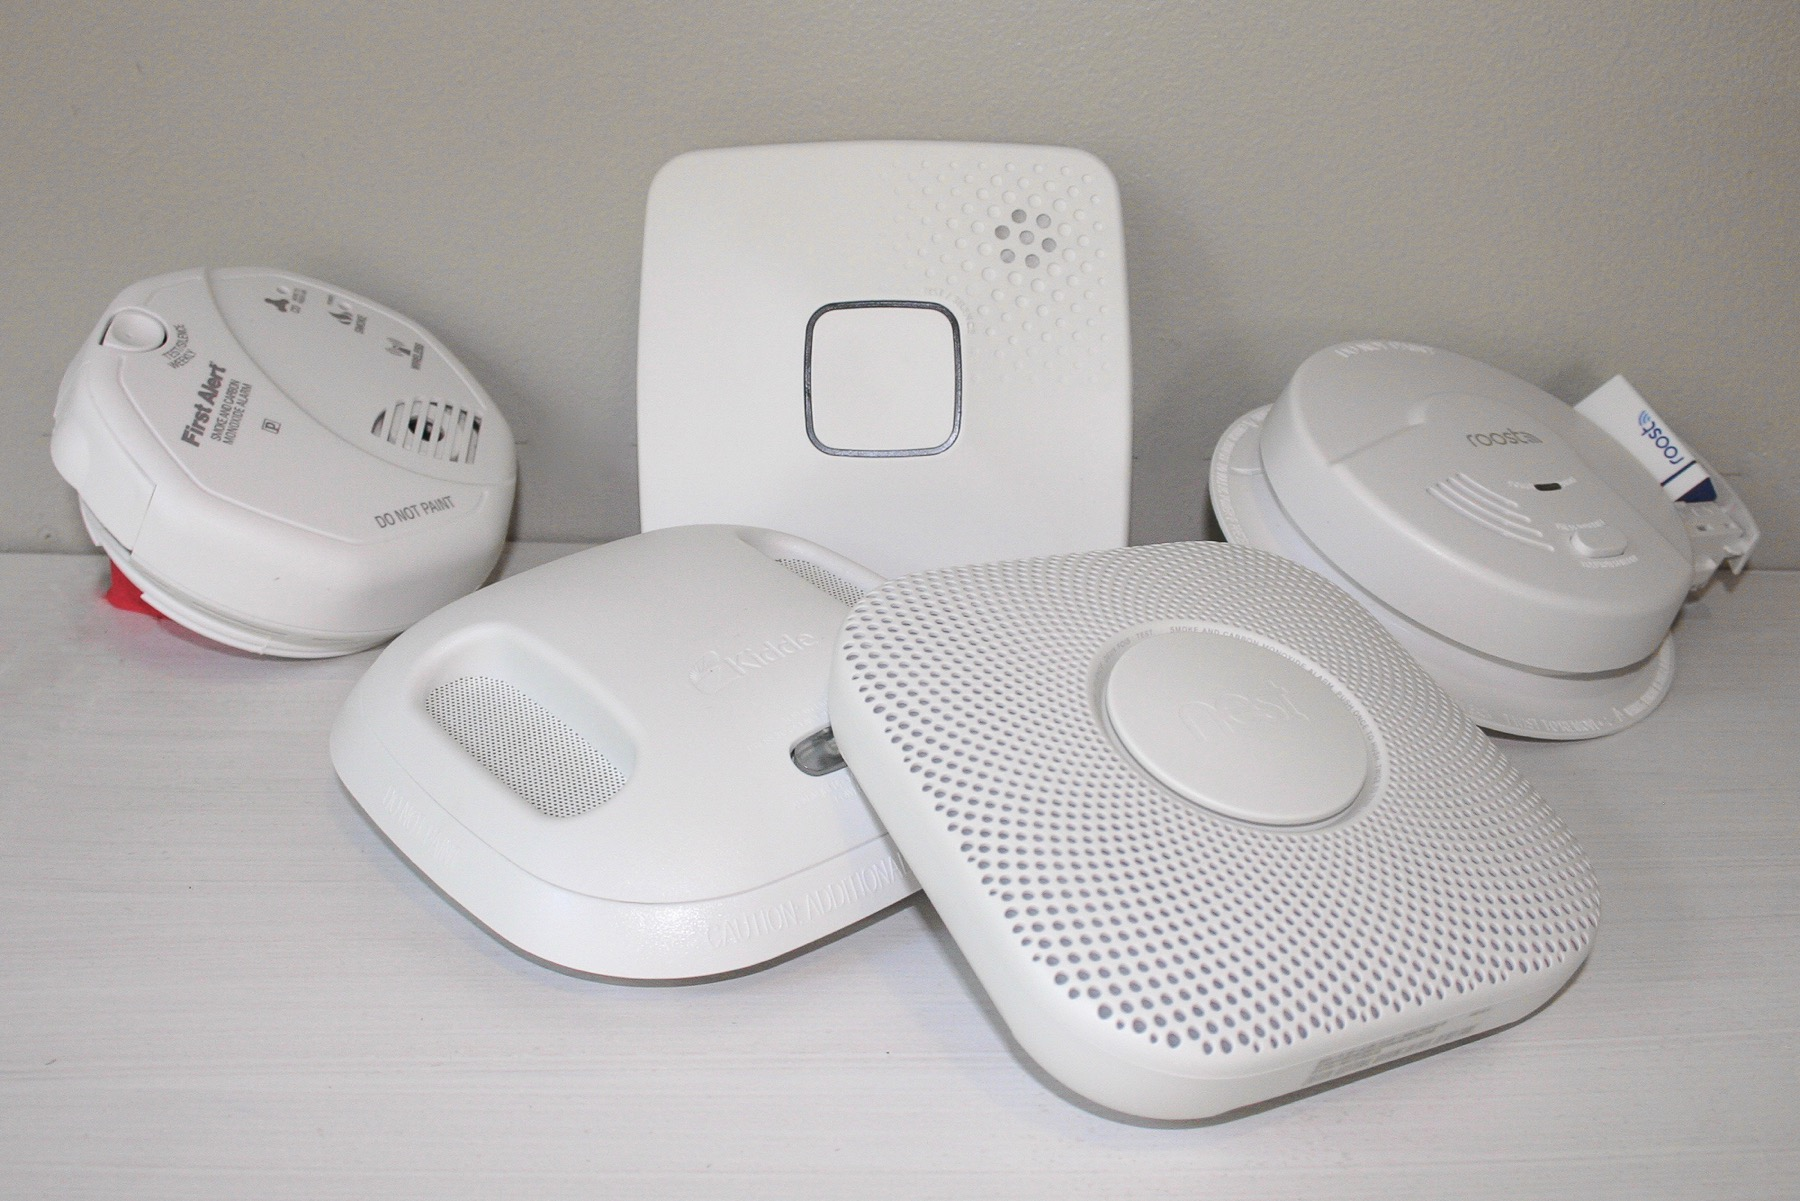 Rousing House How To Turn Off Smoke Alarm Alert How We Picked Tested Smoke Alarm How To Turn Off Smoke Alarms houzz-02 How To Turn Off Smoke Alarm